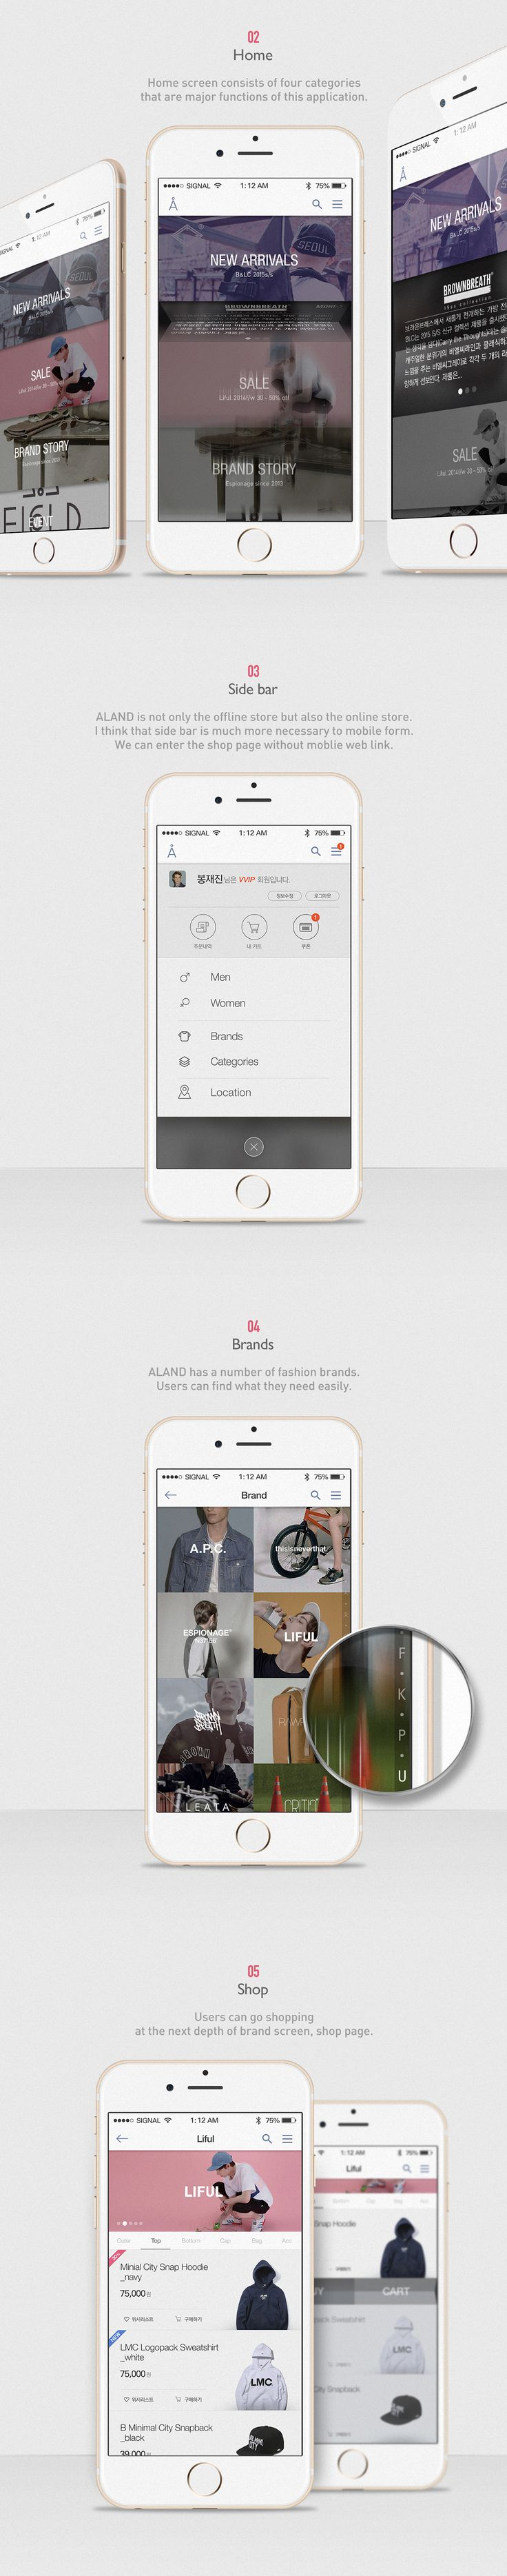 [UI/UX] ALAND Mobile Application Redesign on Behance